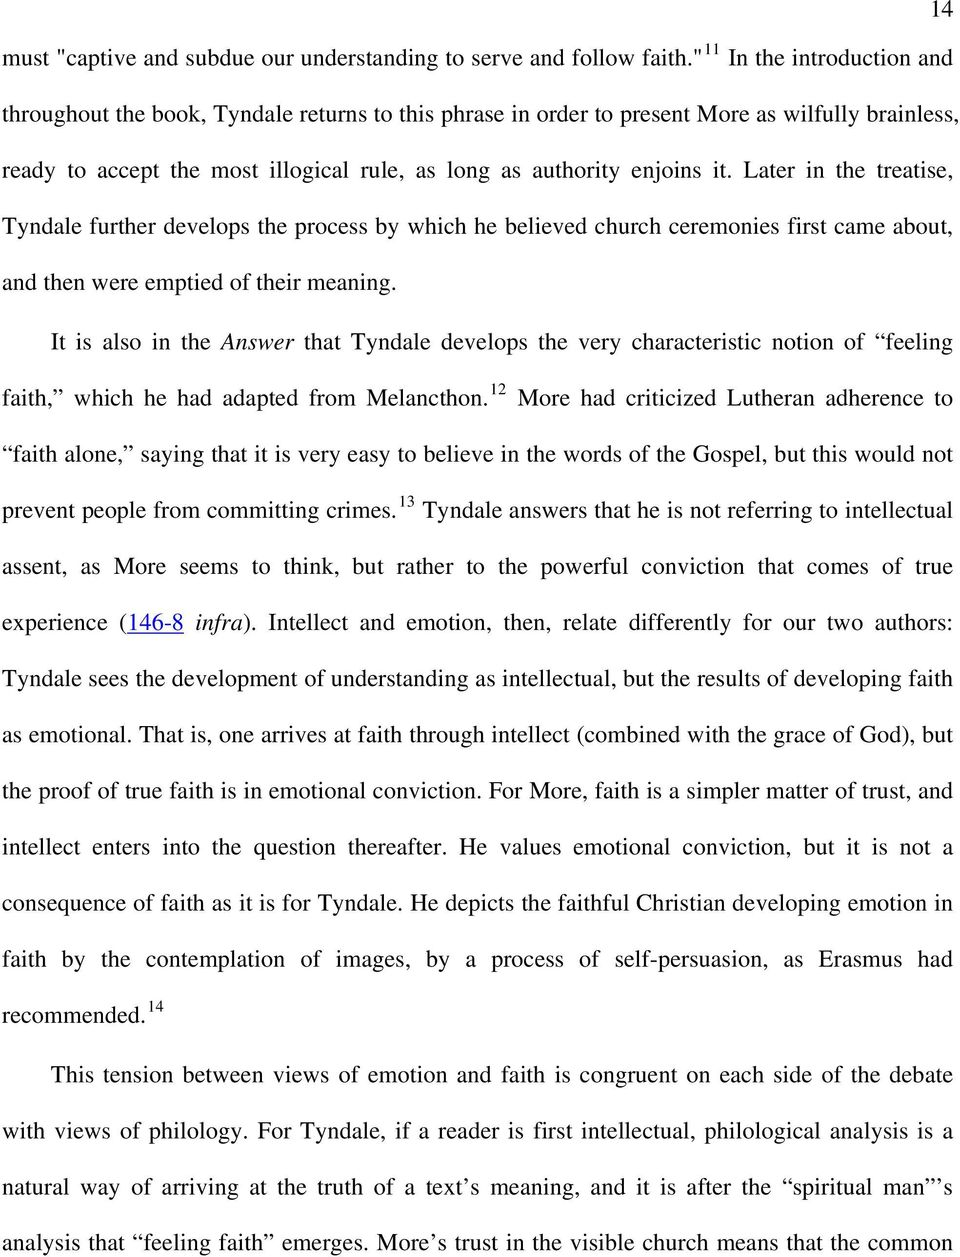 it. Later in the treatise, Tyndale further develops the process by which he believed church ceremonies first came about, and then were emptied of their meaning.